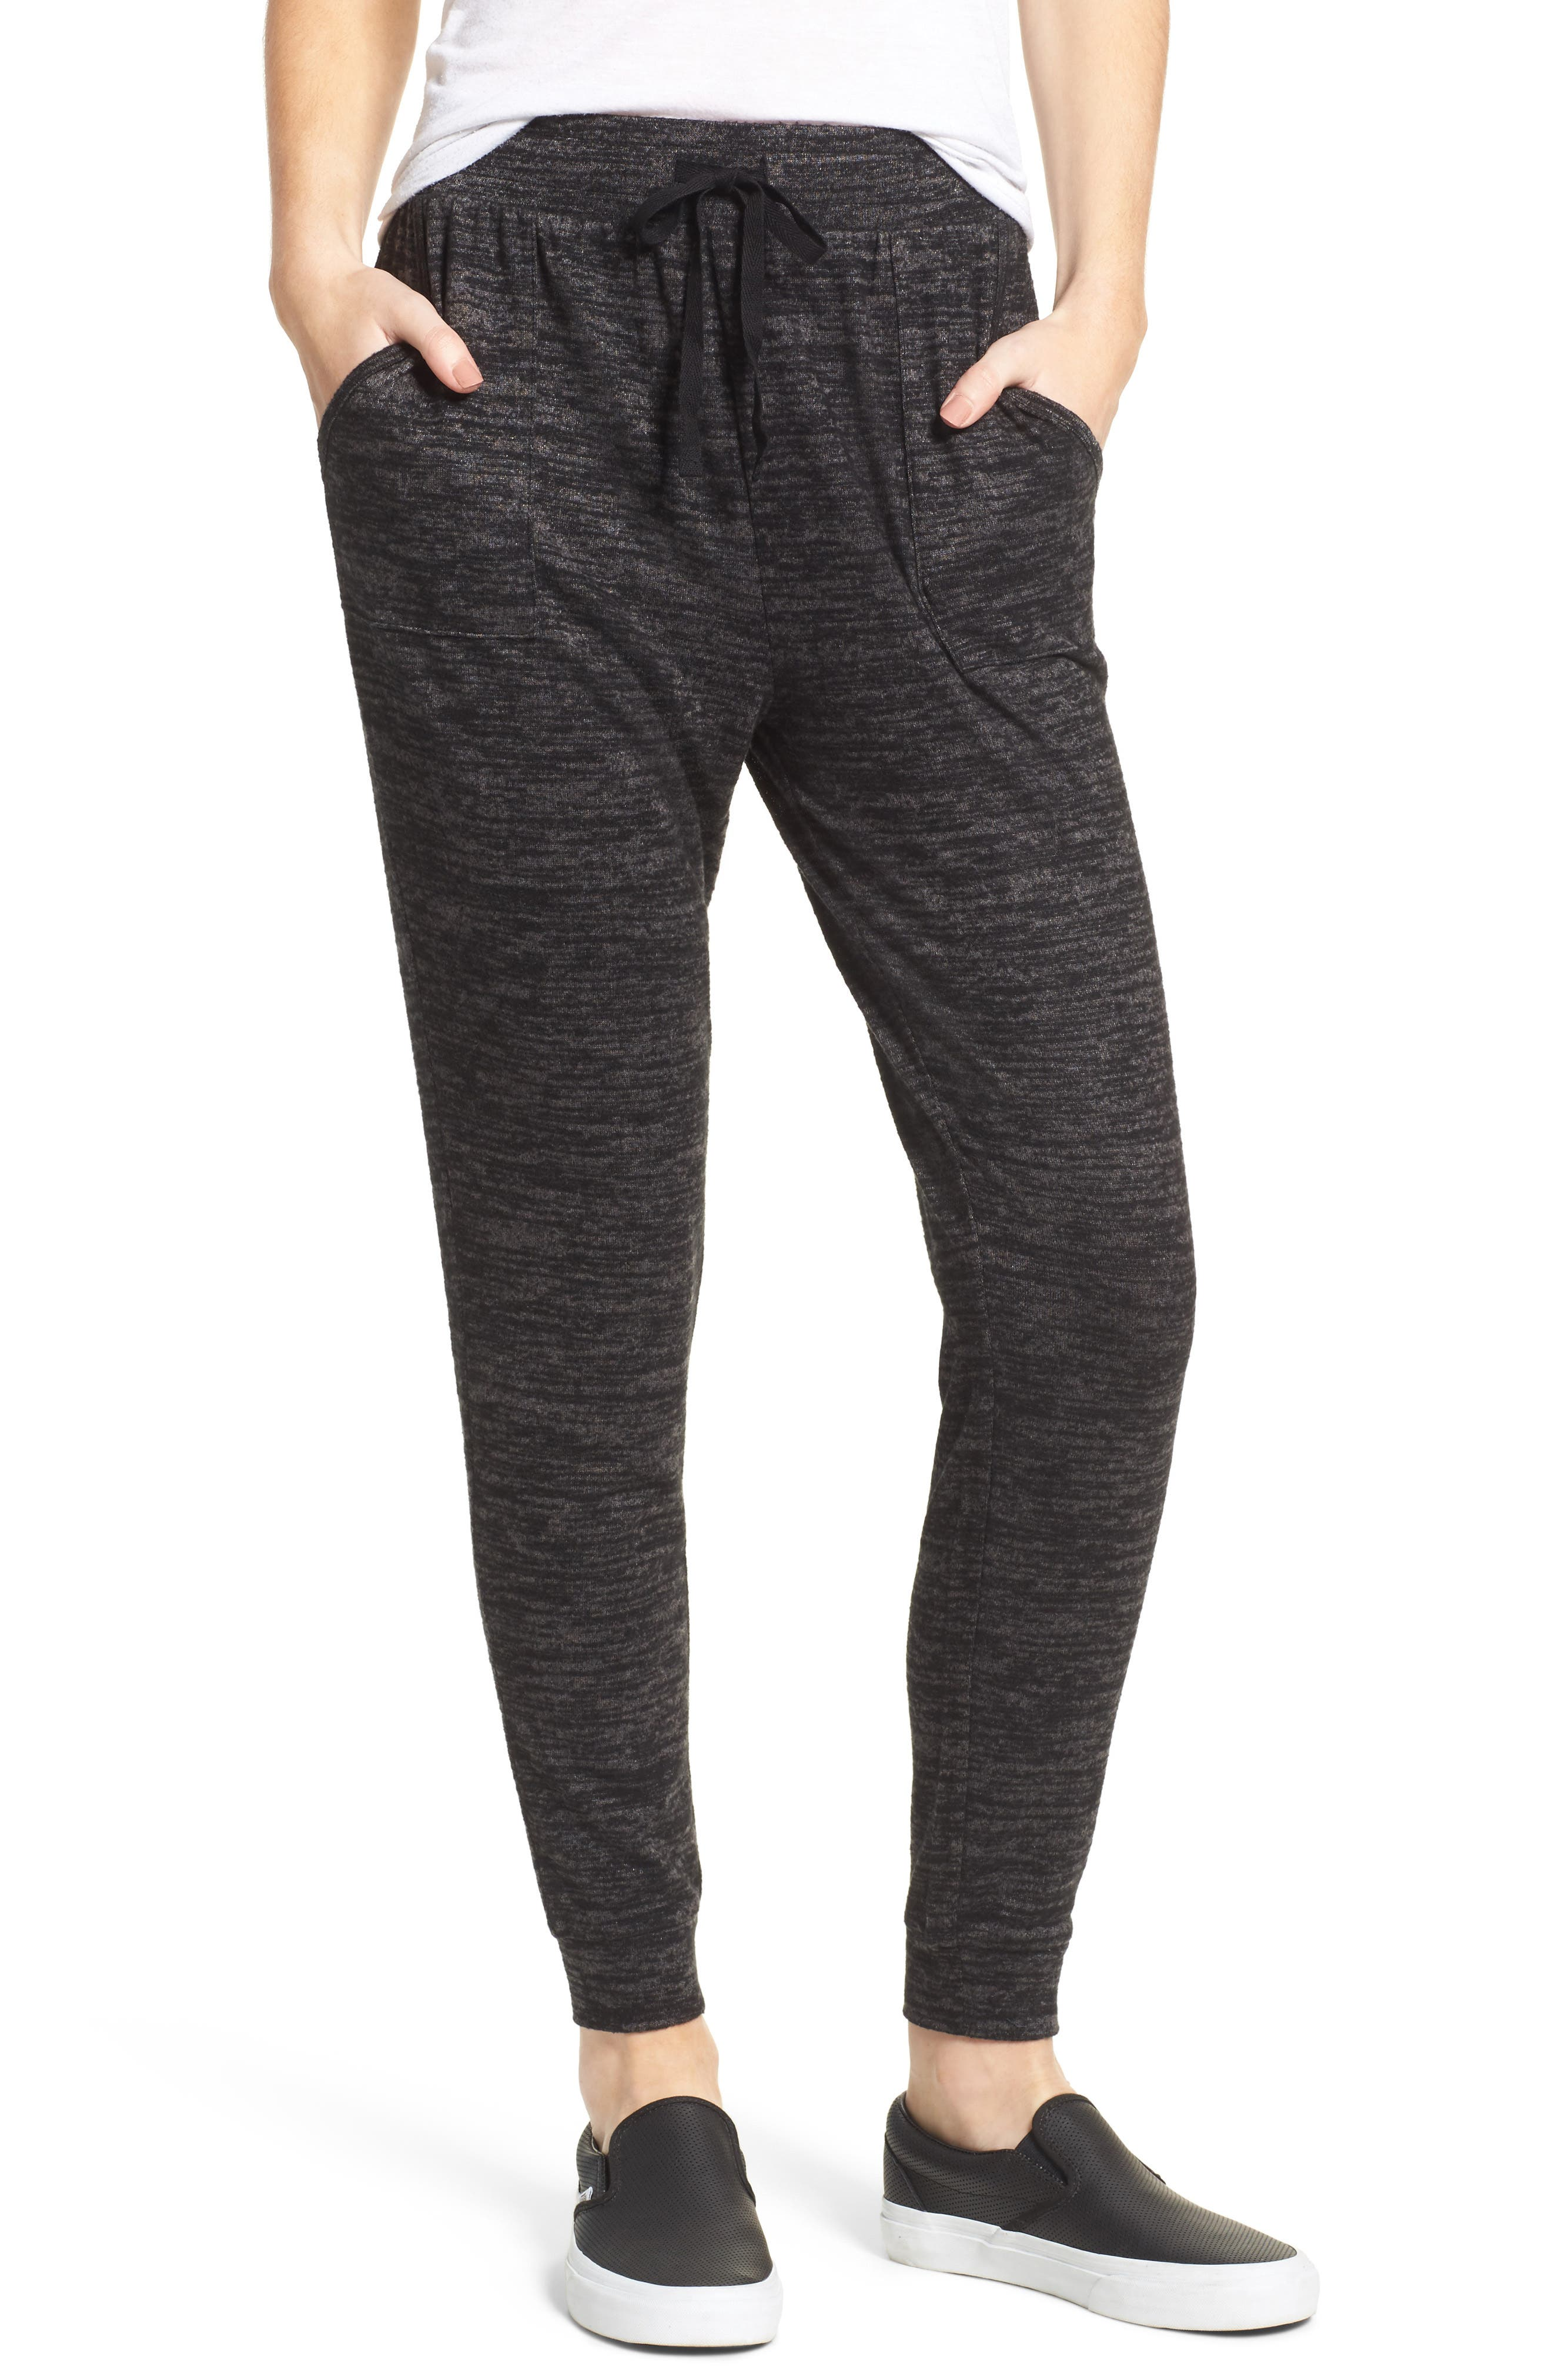 Stretch Knit Joggers,                         Main,                         color, Black